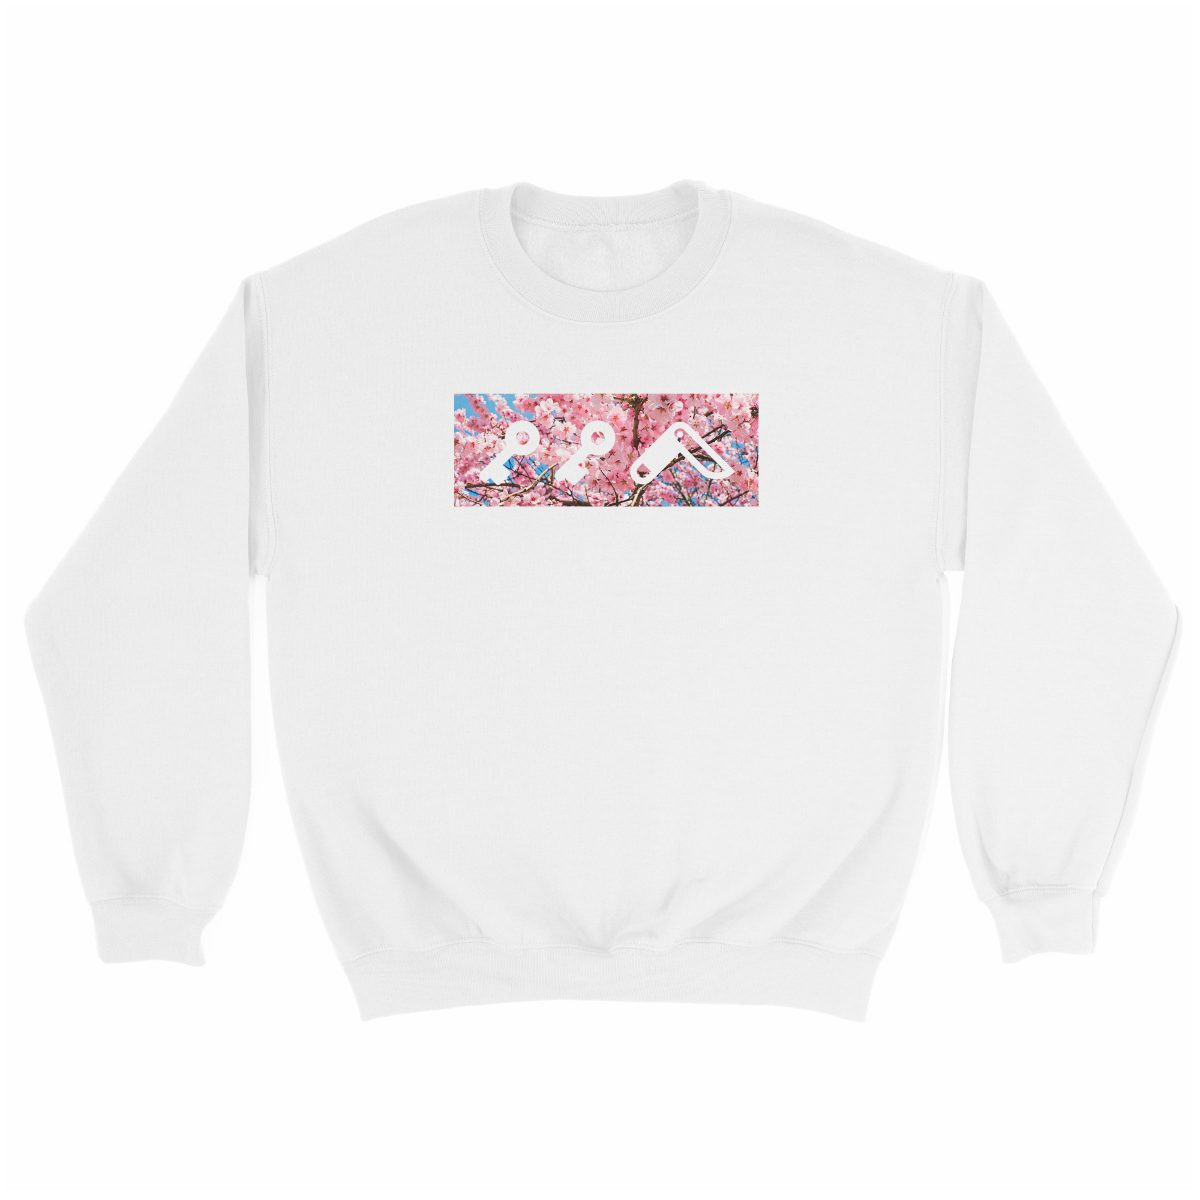 """CHERRY FLOWER bOM"" kikicutt logo japanese cherry tree soft graphic sweatshirt in white"